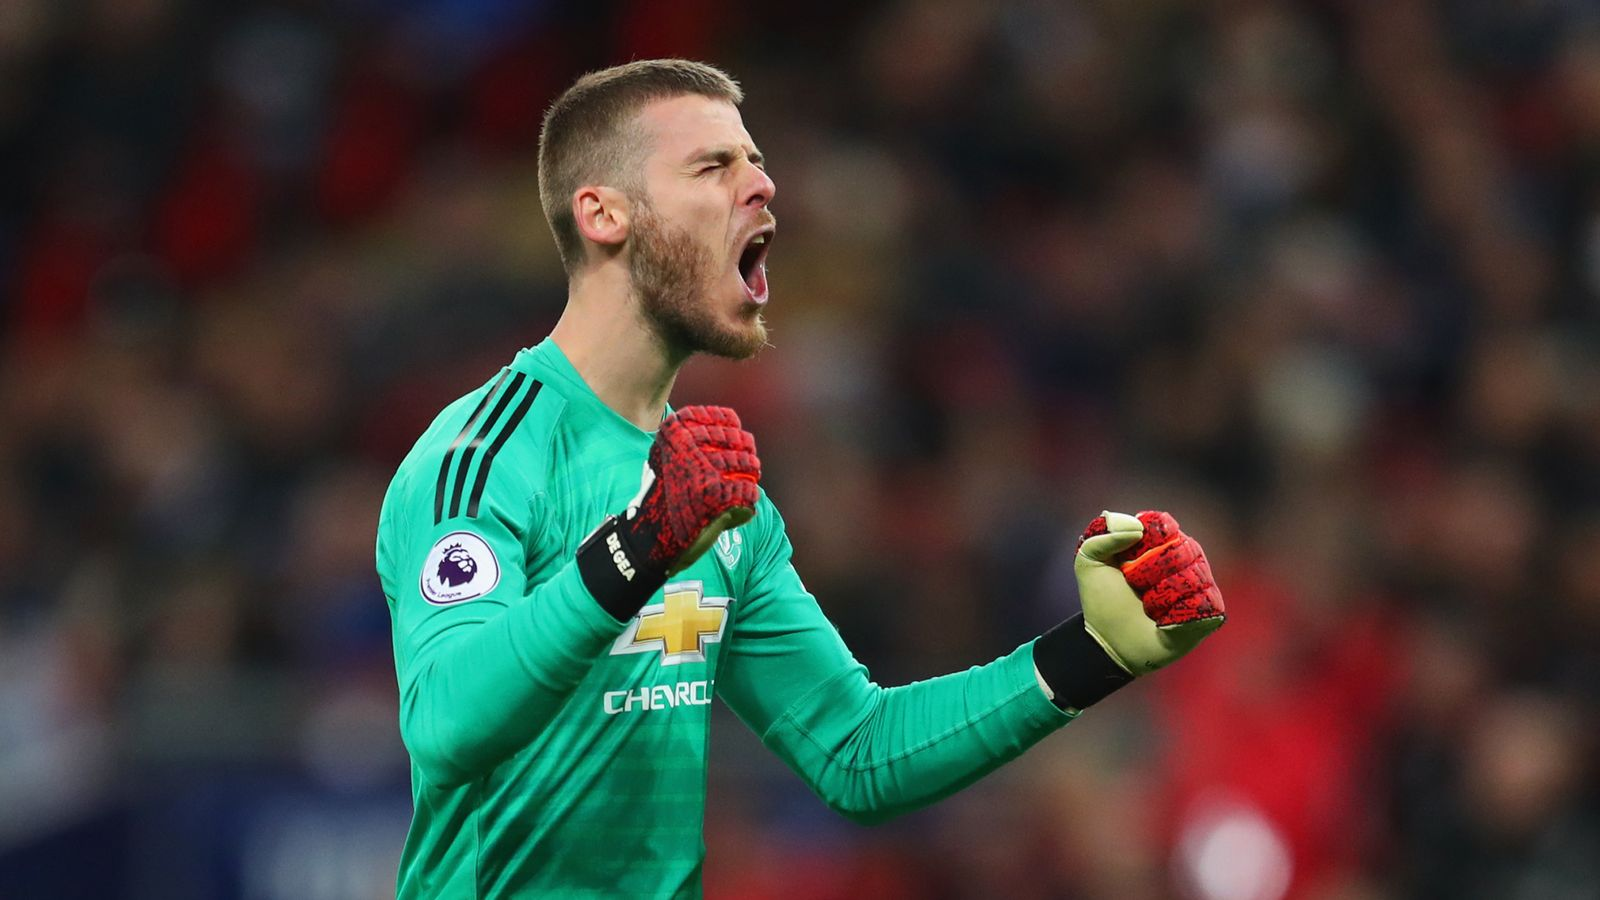 david de gea analysis essay